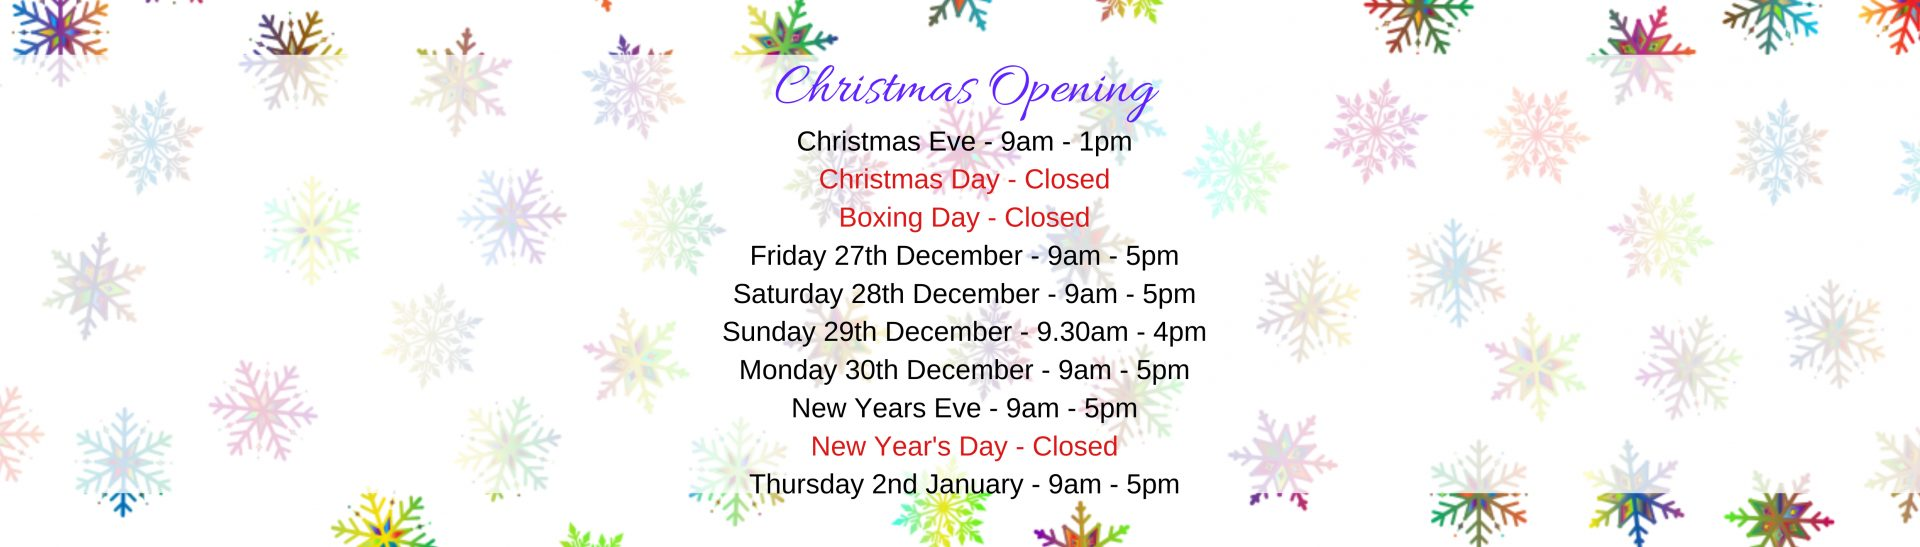 Opening Hours for the Christmas period